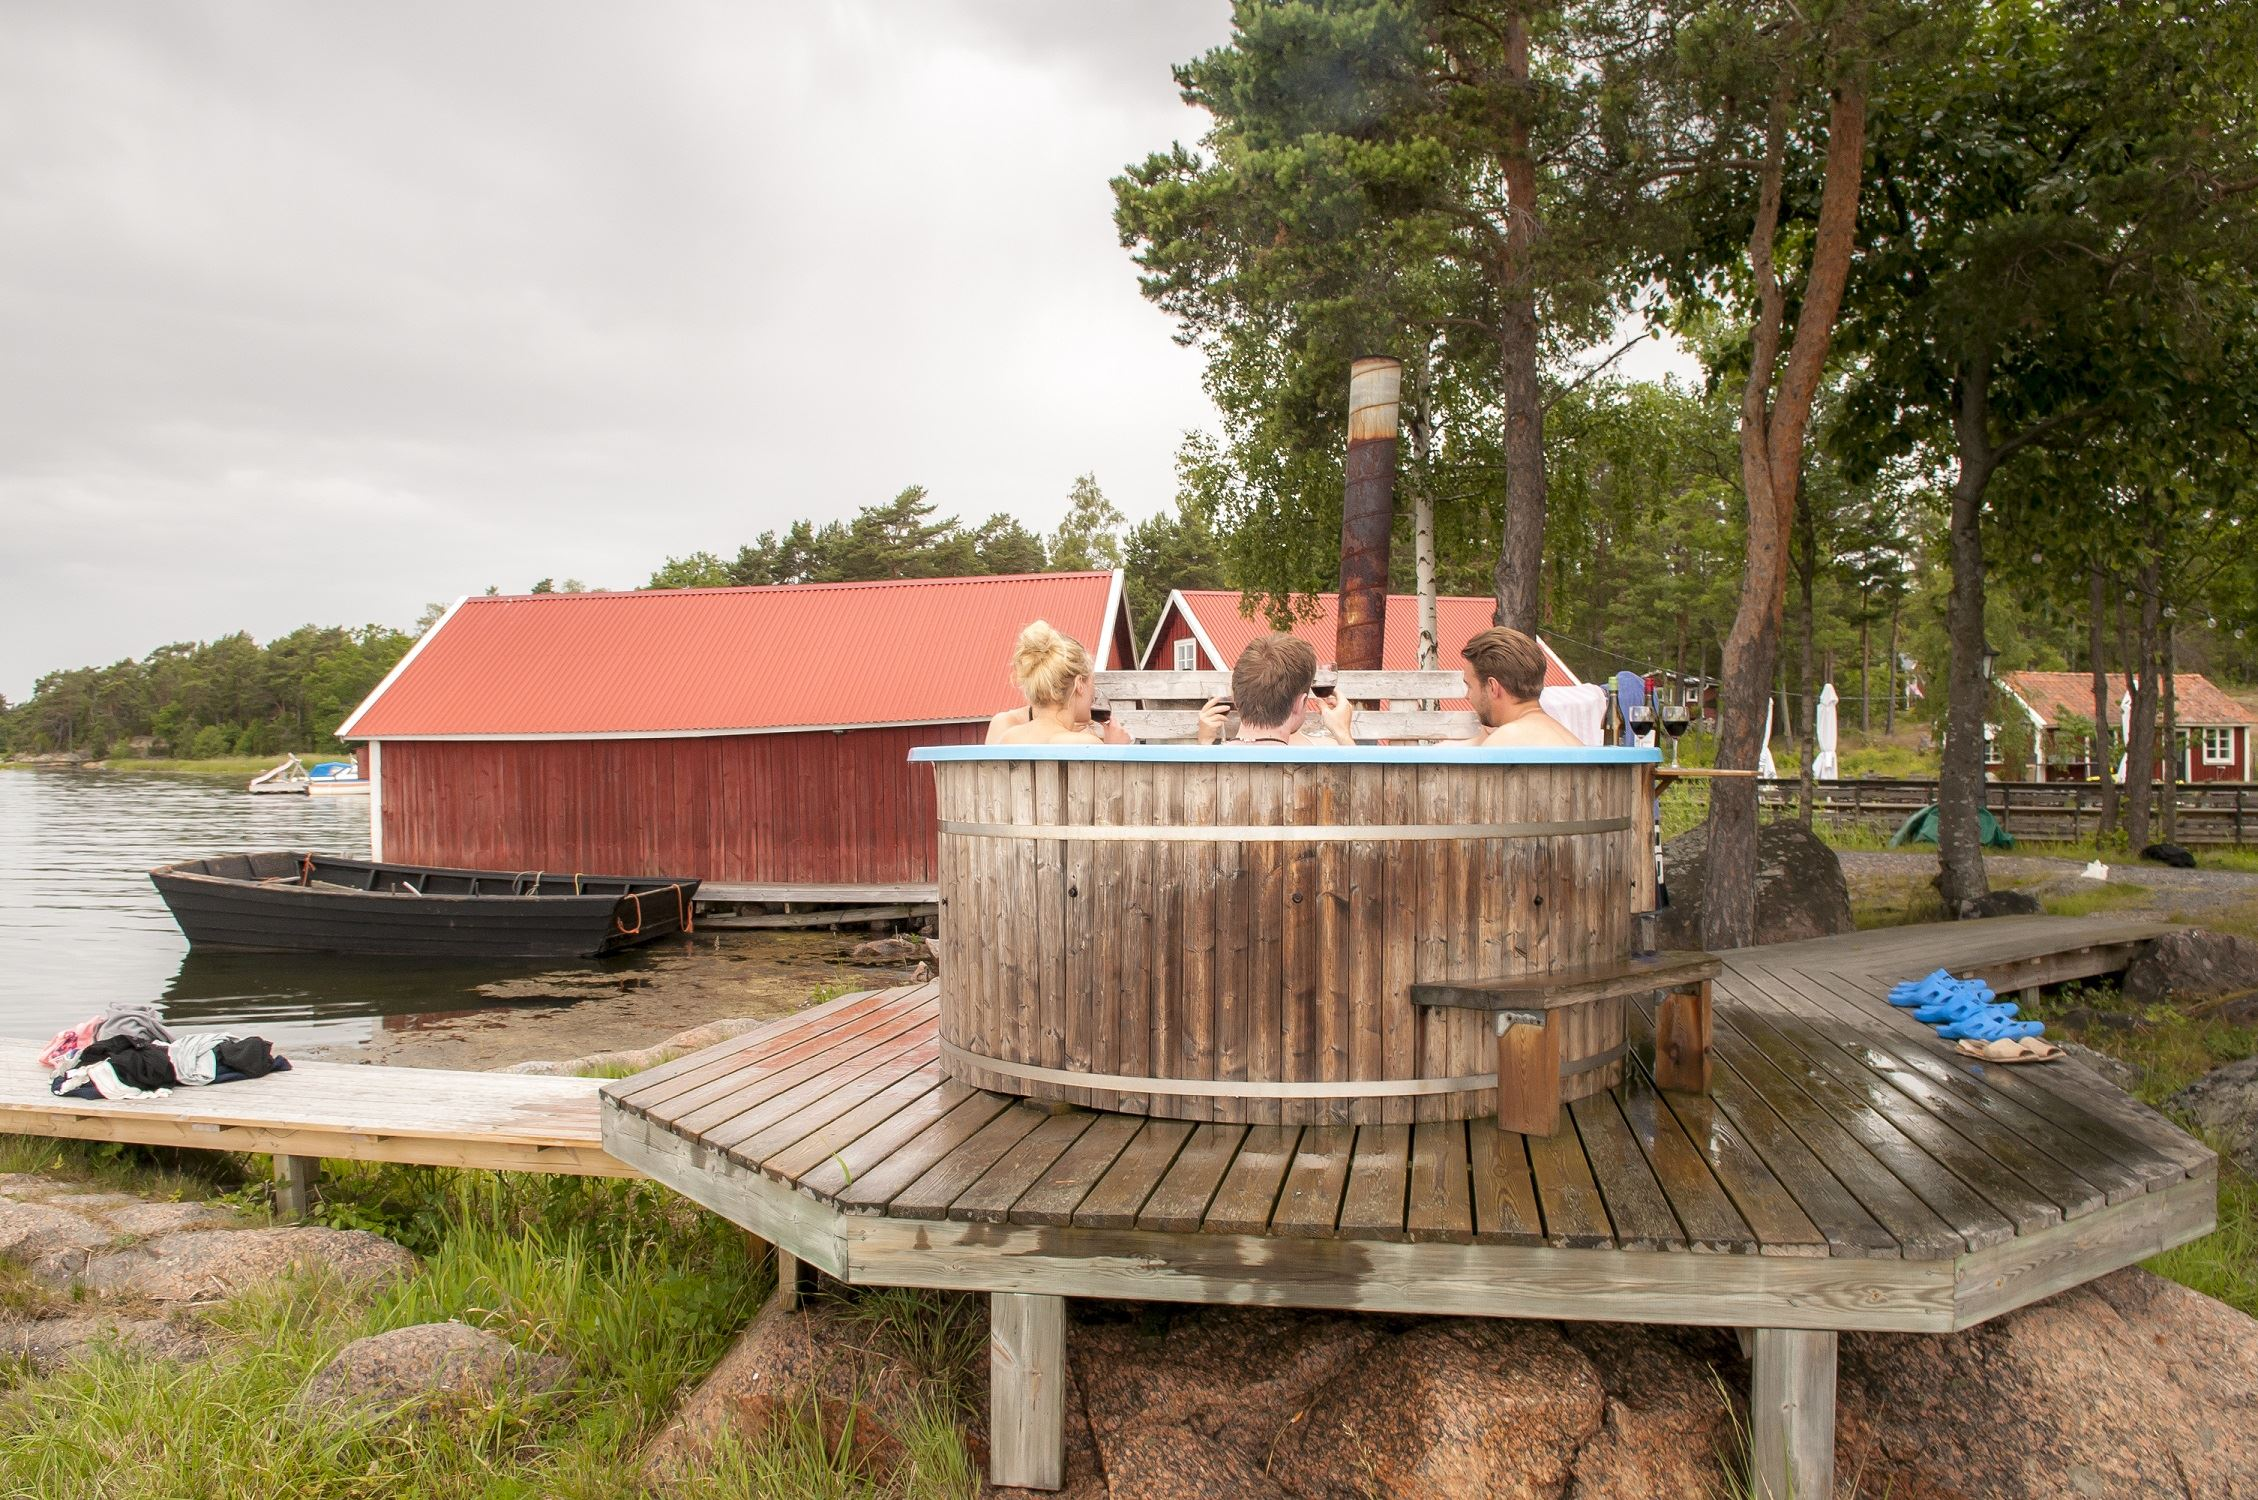 Sauna and hot tub at Hasselö